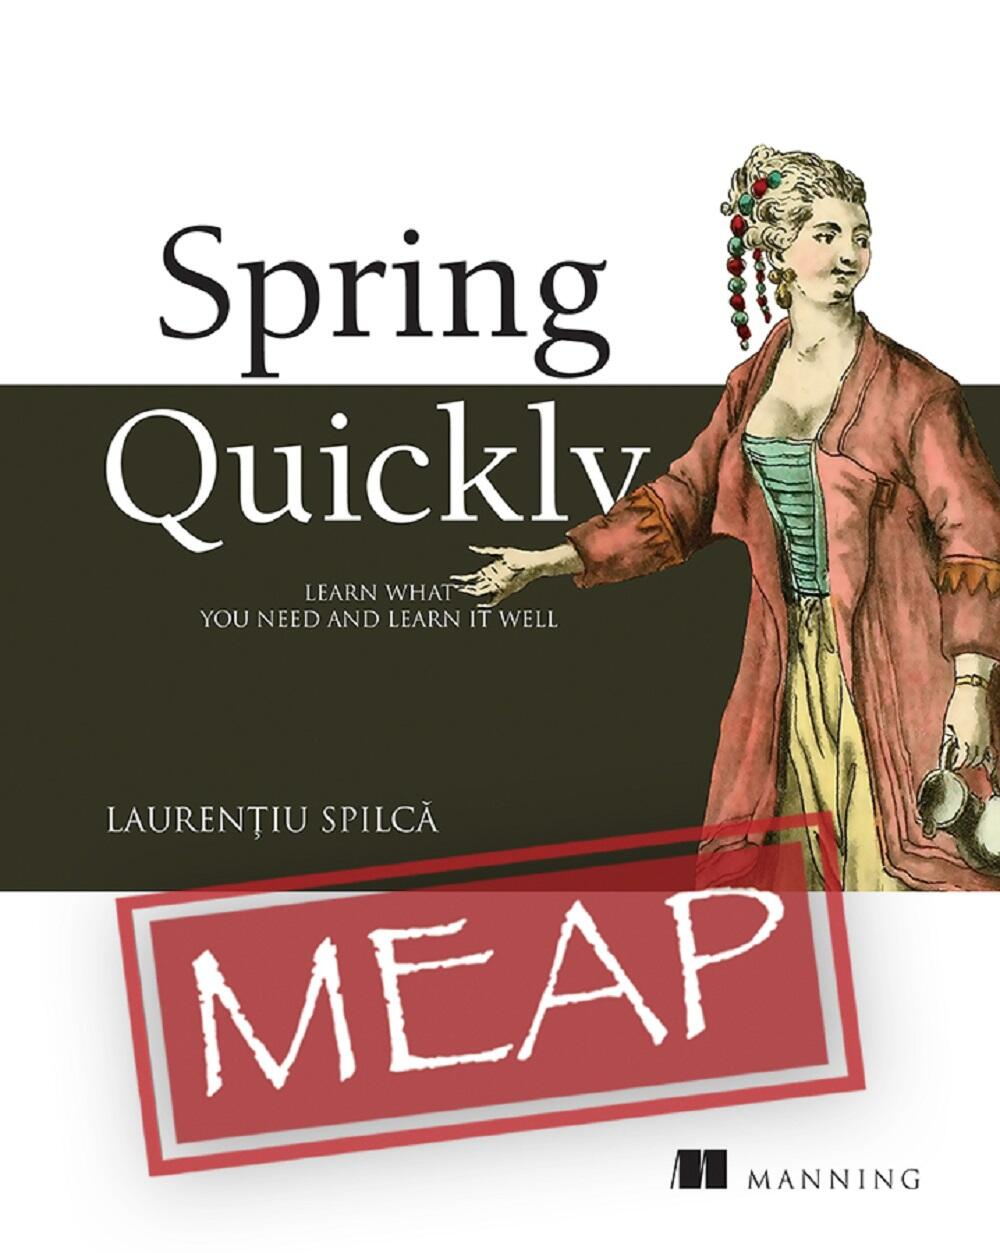 Spring Quickly (Manning)